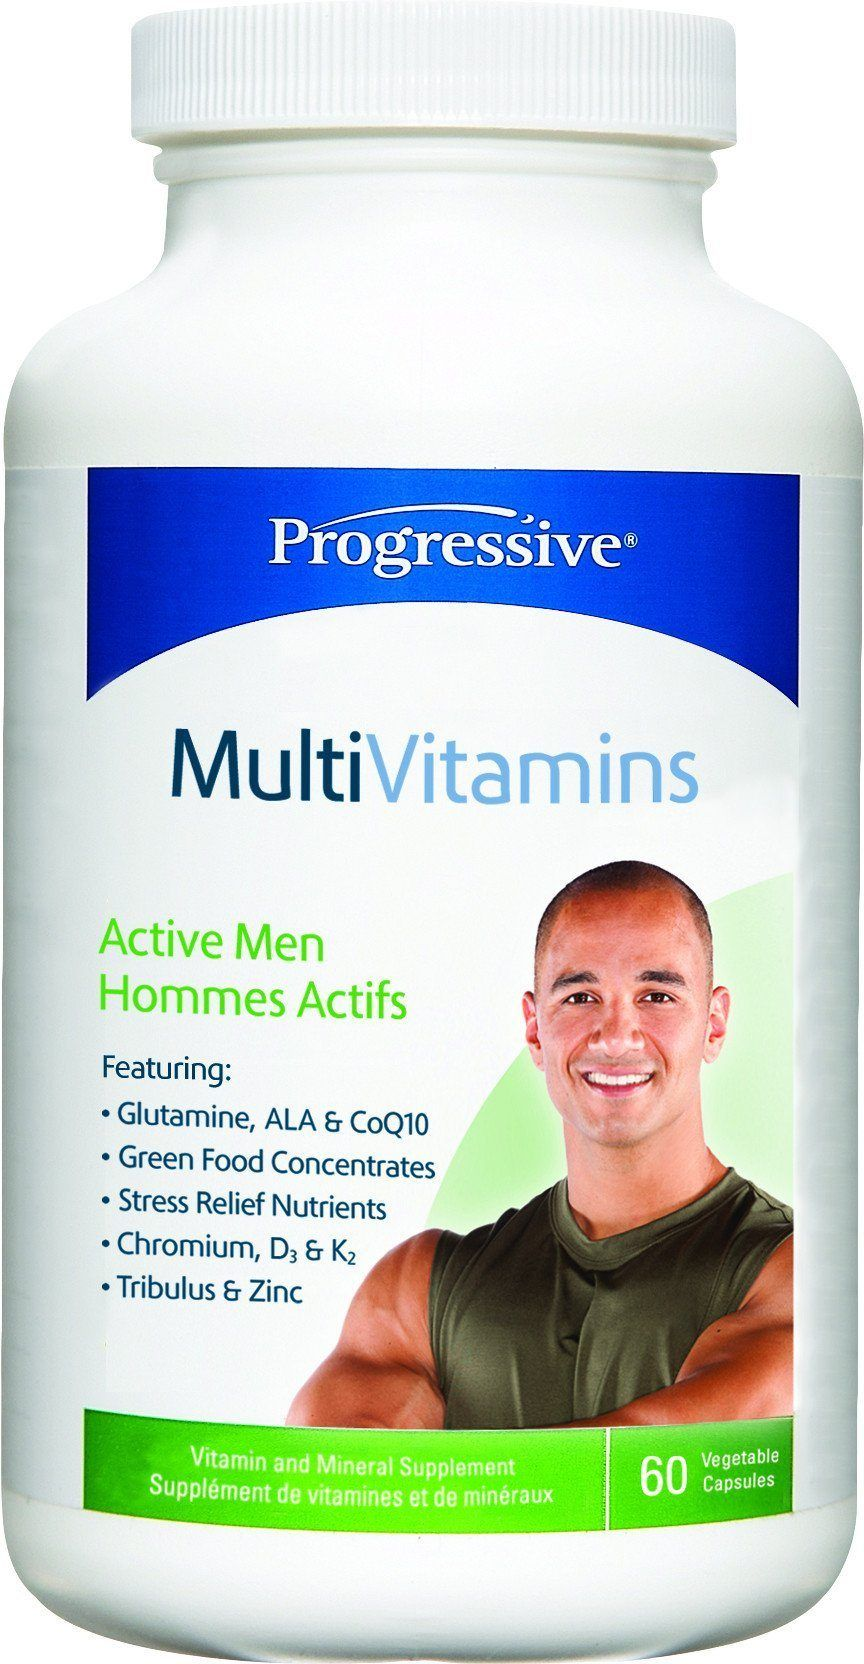 Supplements & Vitamins - Progressive - MultiVitamins For Active Men, 60 Caps